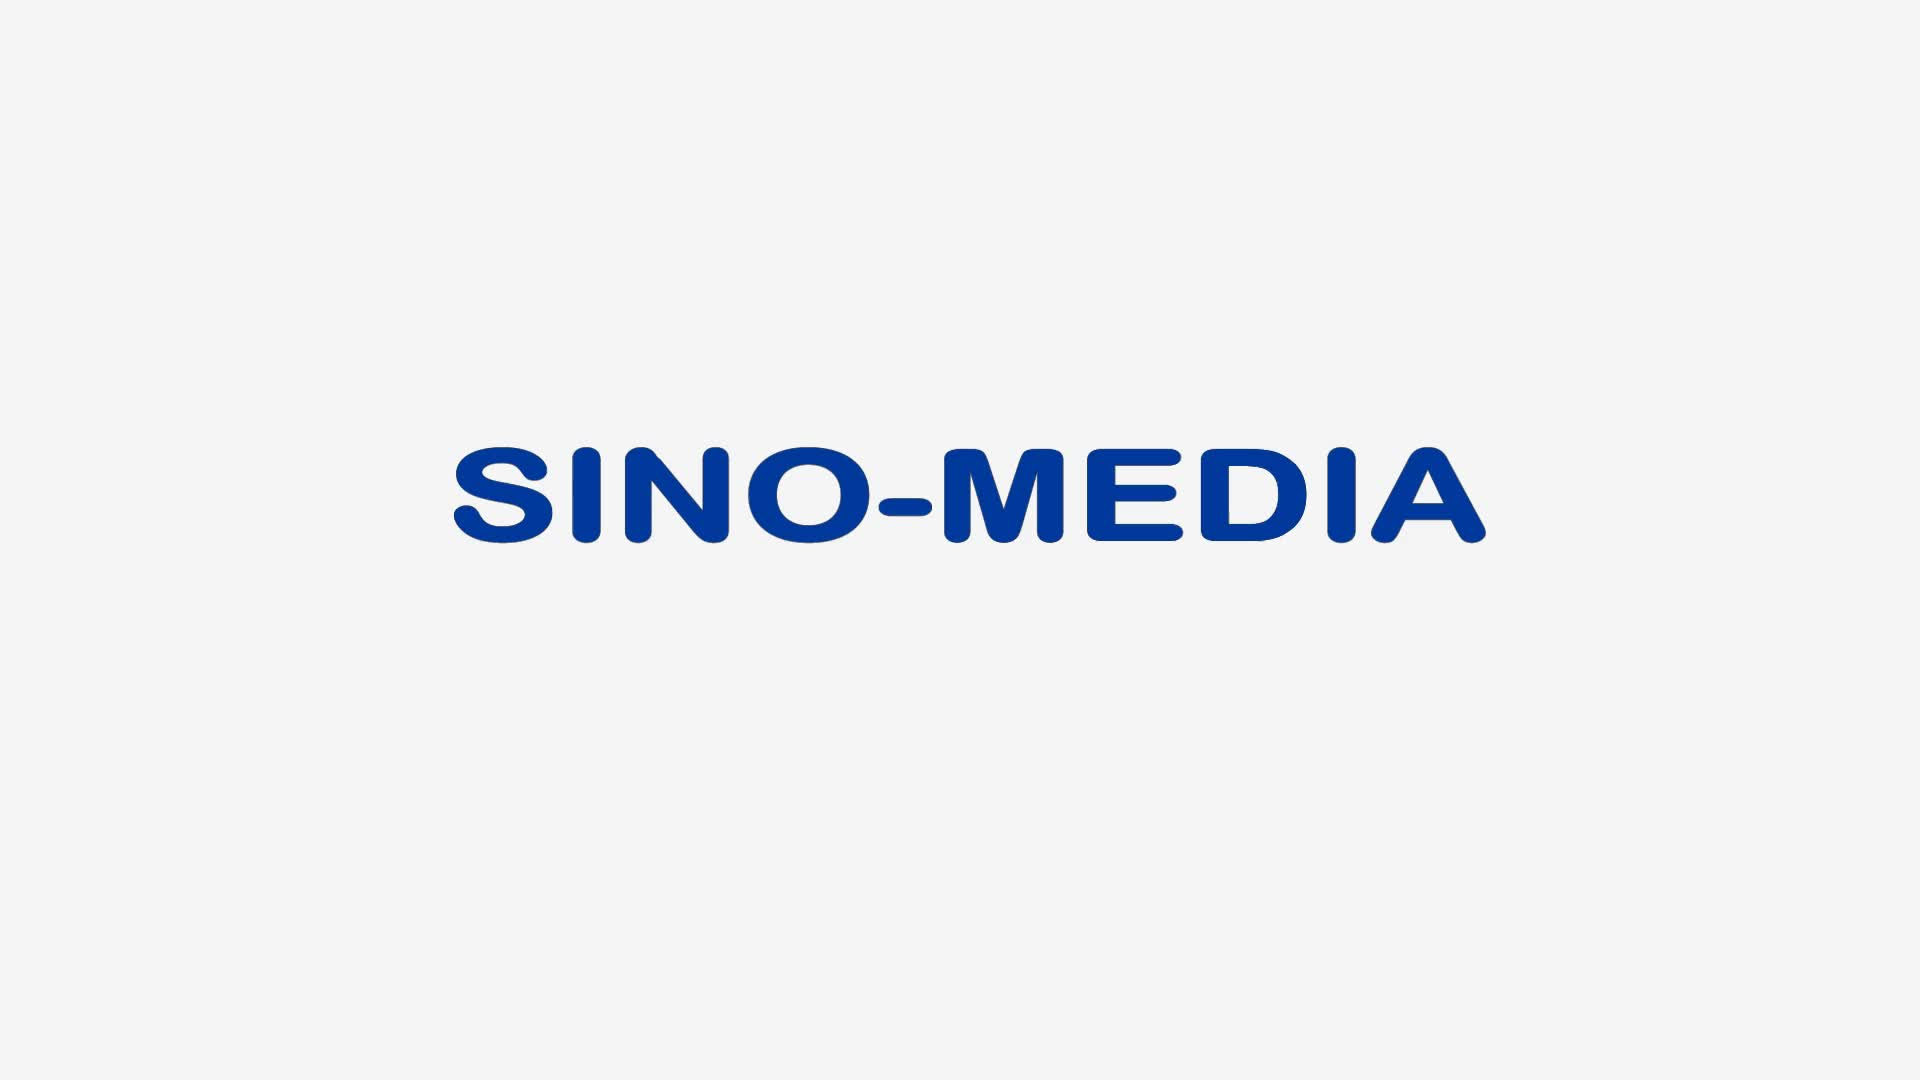 Sino media 20 30 pin micro coaxial lvds cable types  for lcd panel